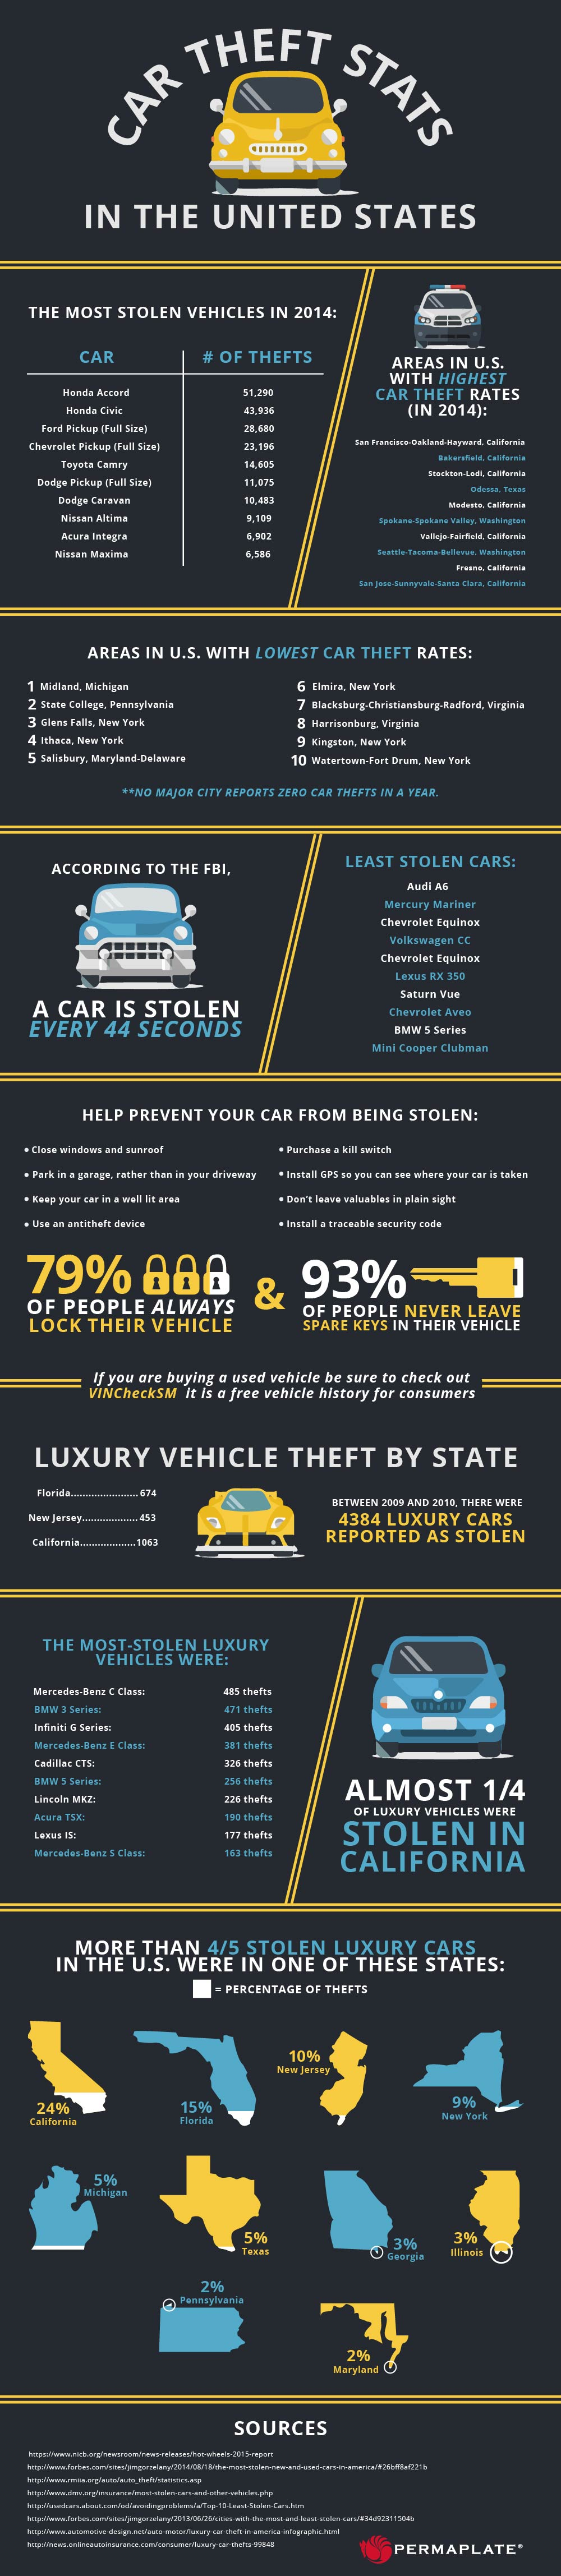 Car Theft Stats in the United States infographic